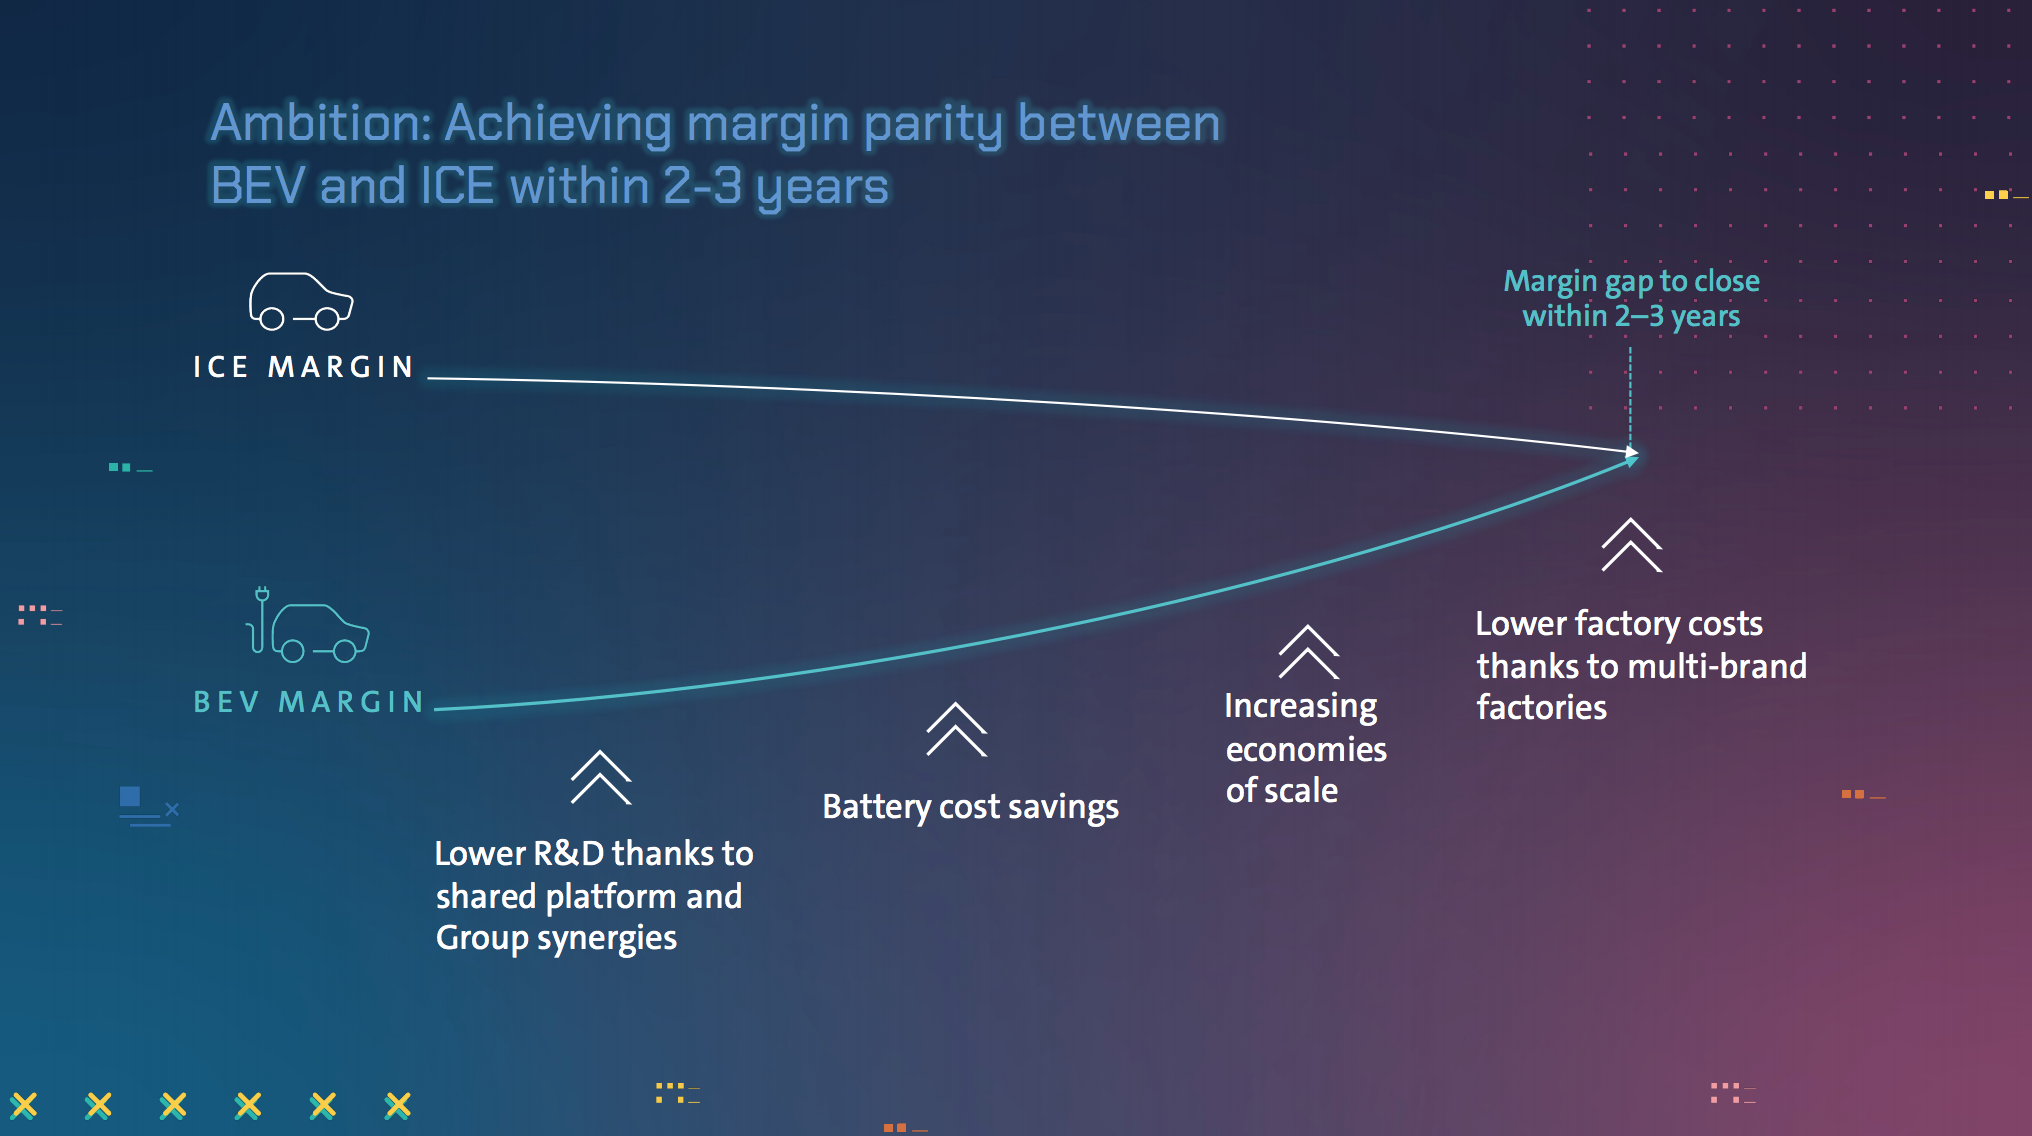 Volkswagen's new business strategy puts software and autonomous driving front and center